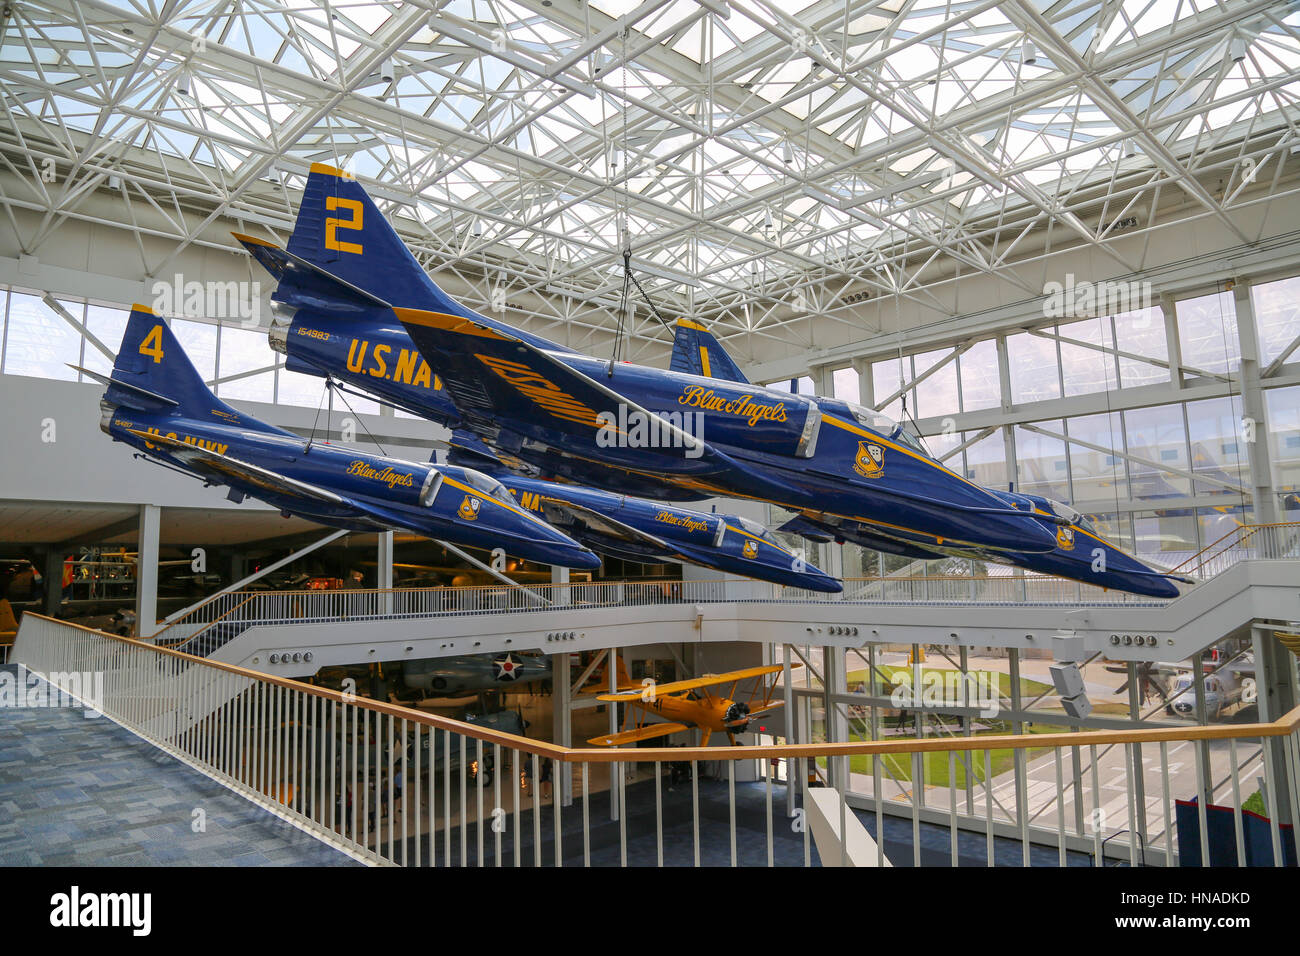 Skyhawk Stock Photos & Skyhawk Stock Images - Alamy